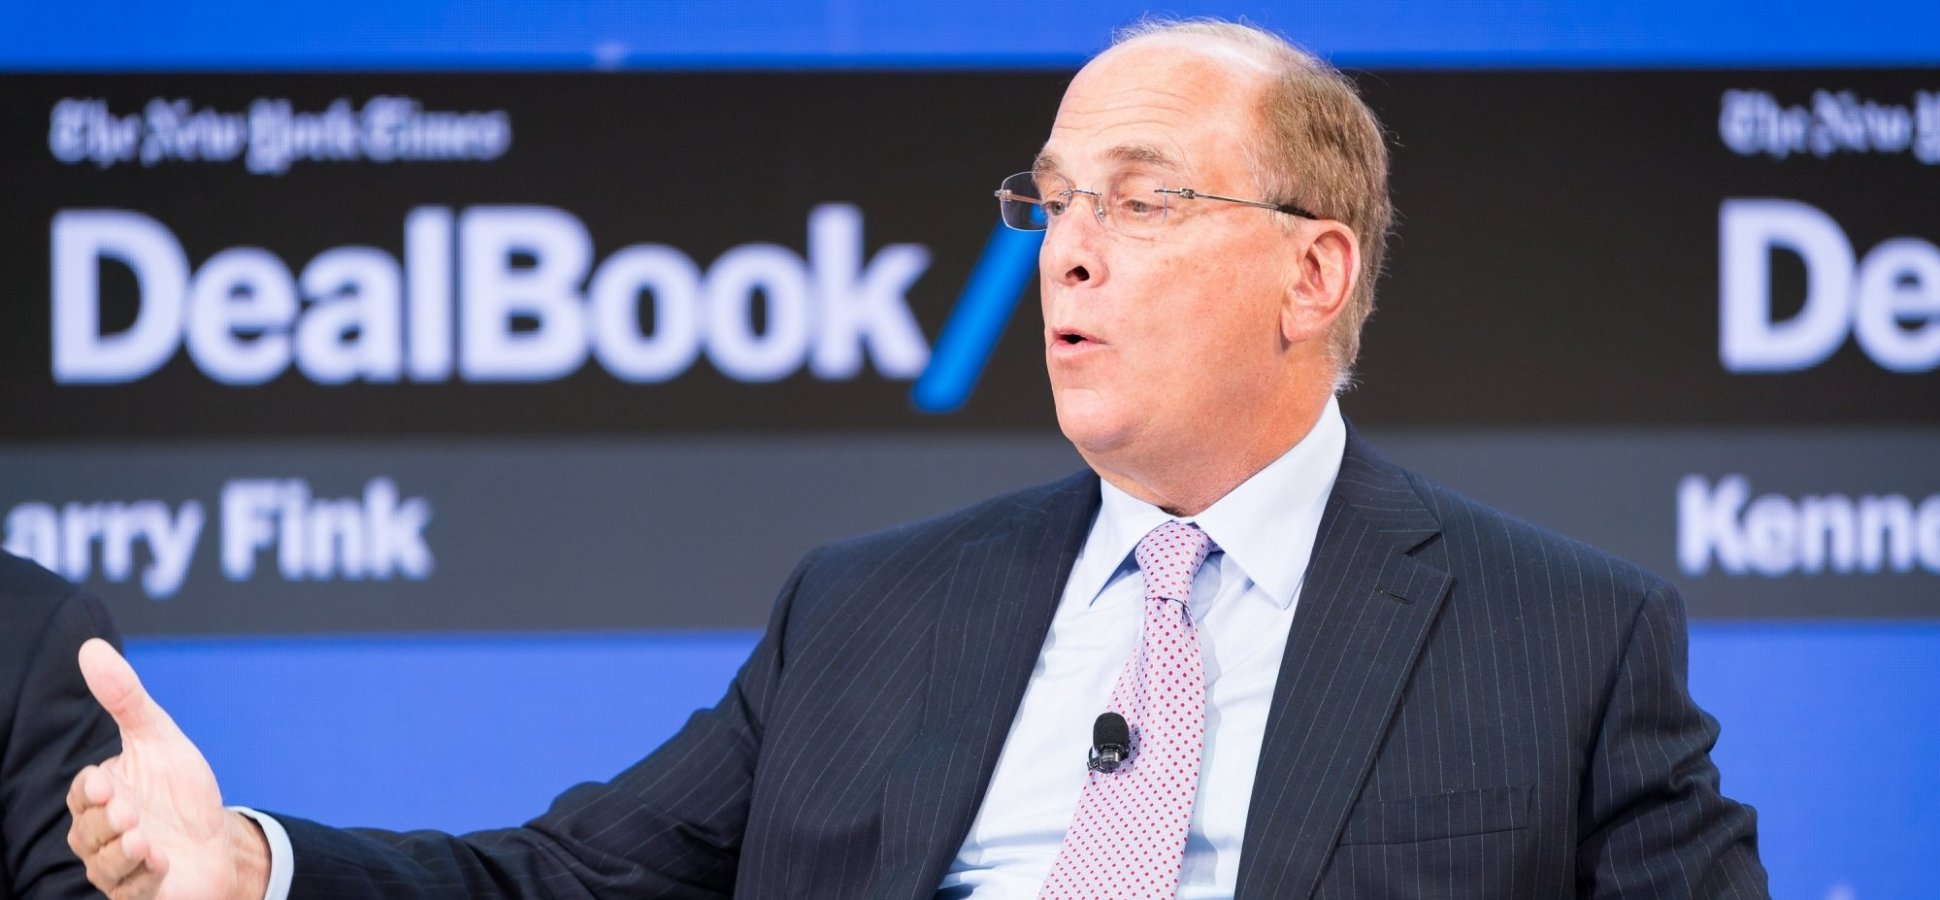 BlackRock CEO Larry Fink's Annual Letter Just Sent a Powerful Environmental Message to Companies Everywhere